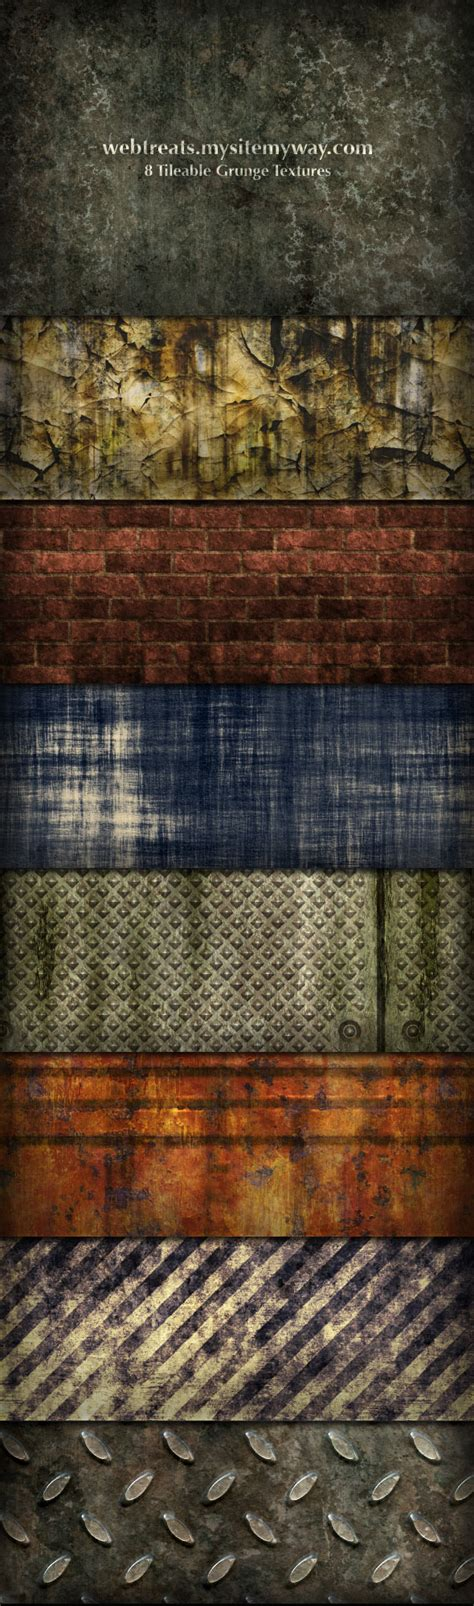 Industrial Pattern Psd | over 1000 amazing photoshop textures and patterns sets are